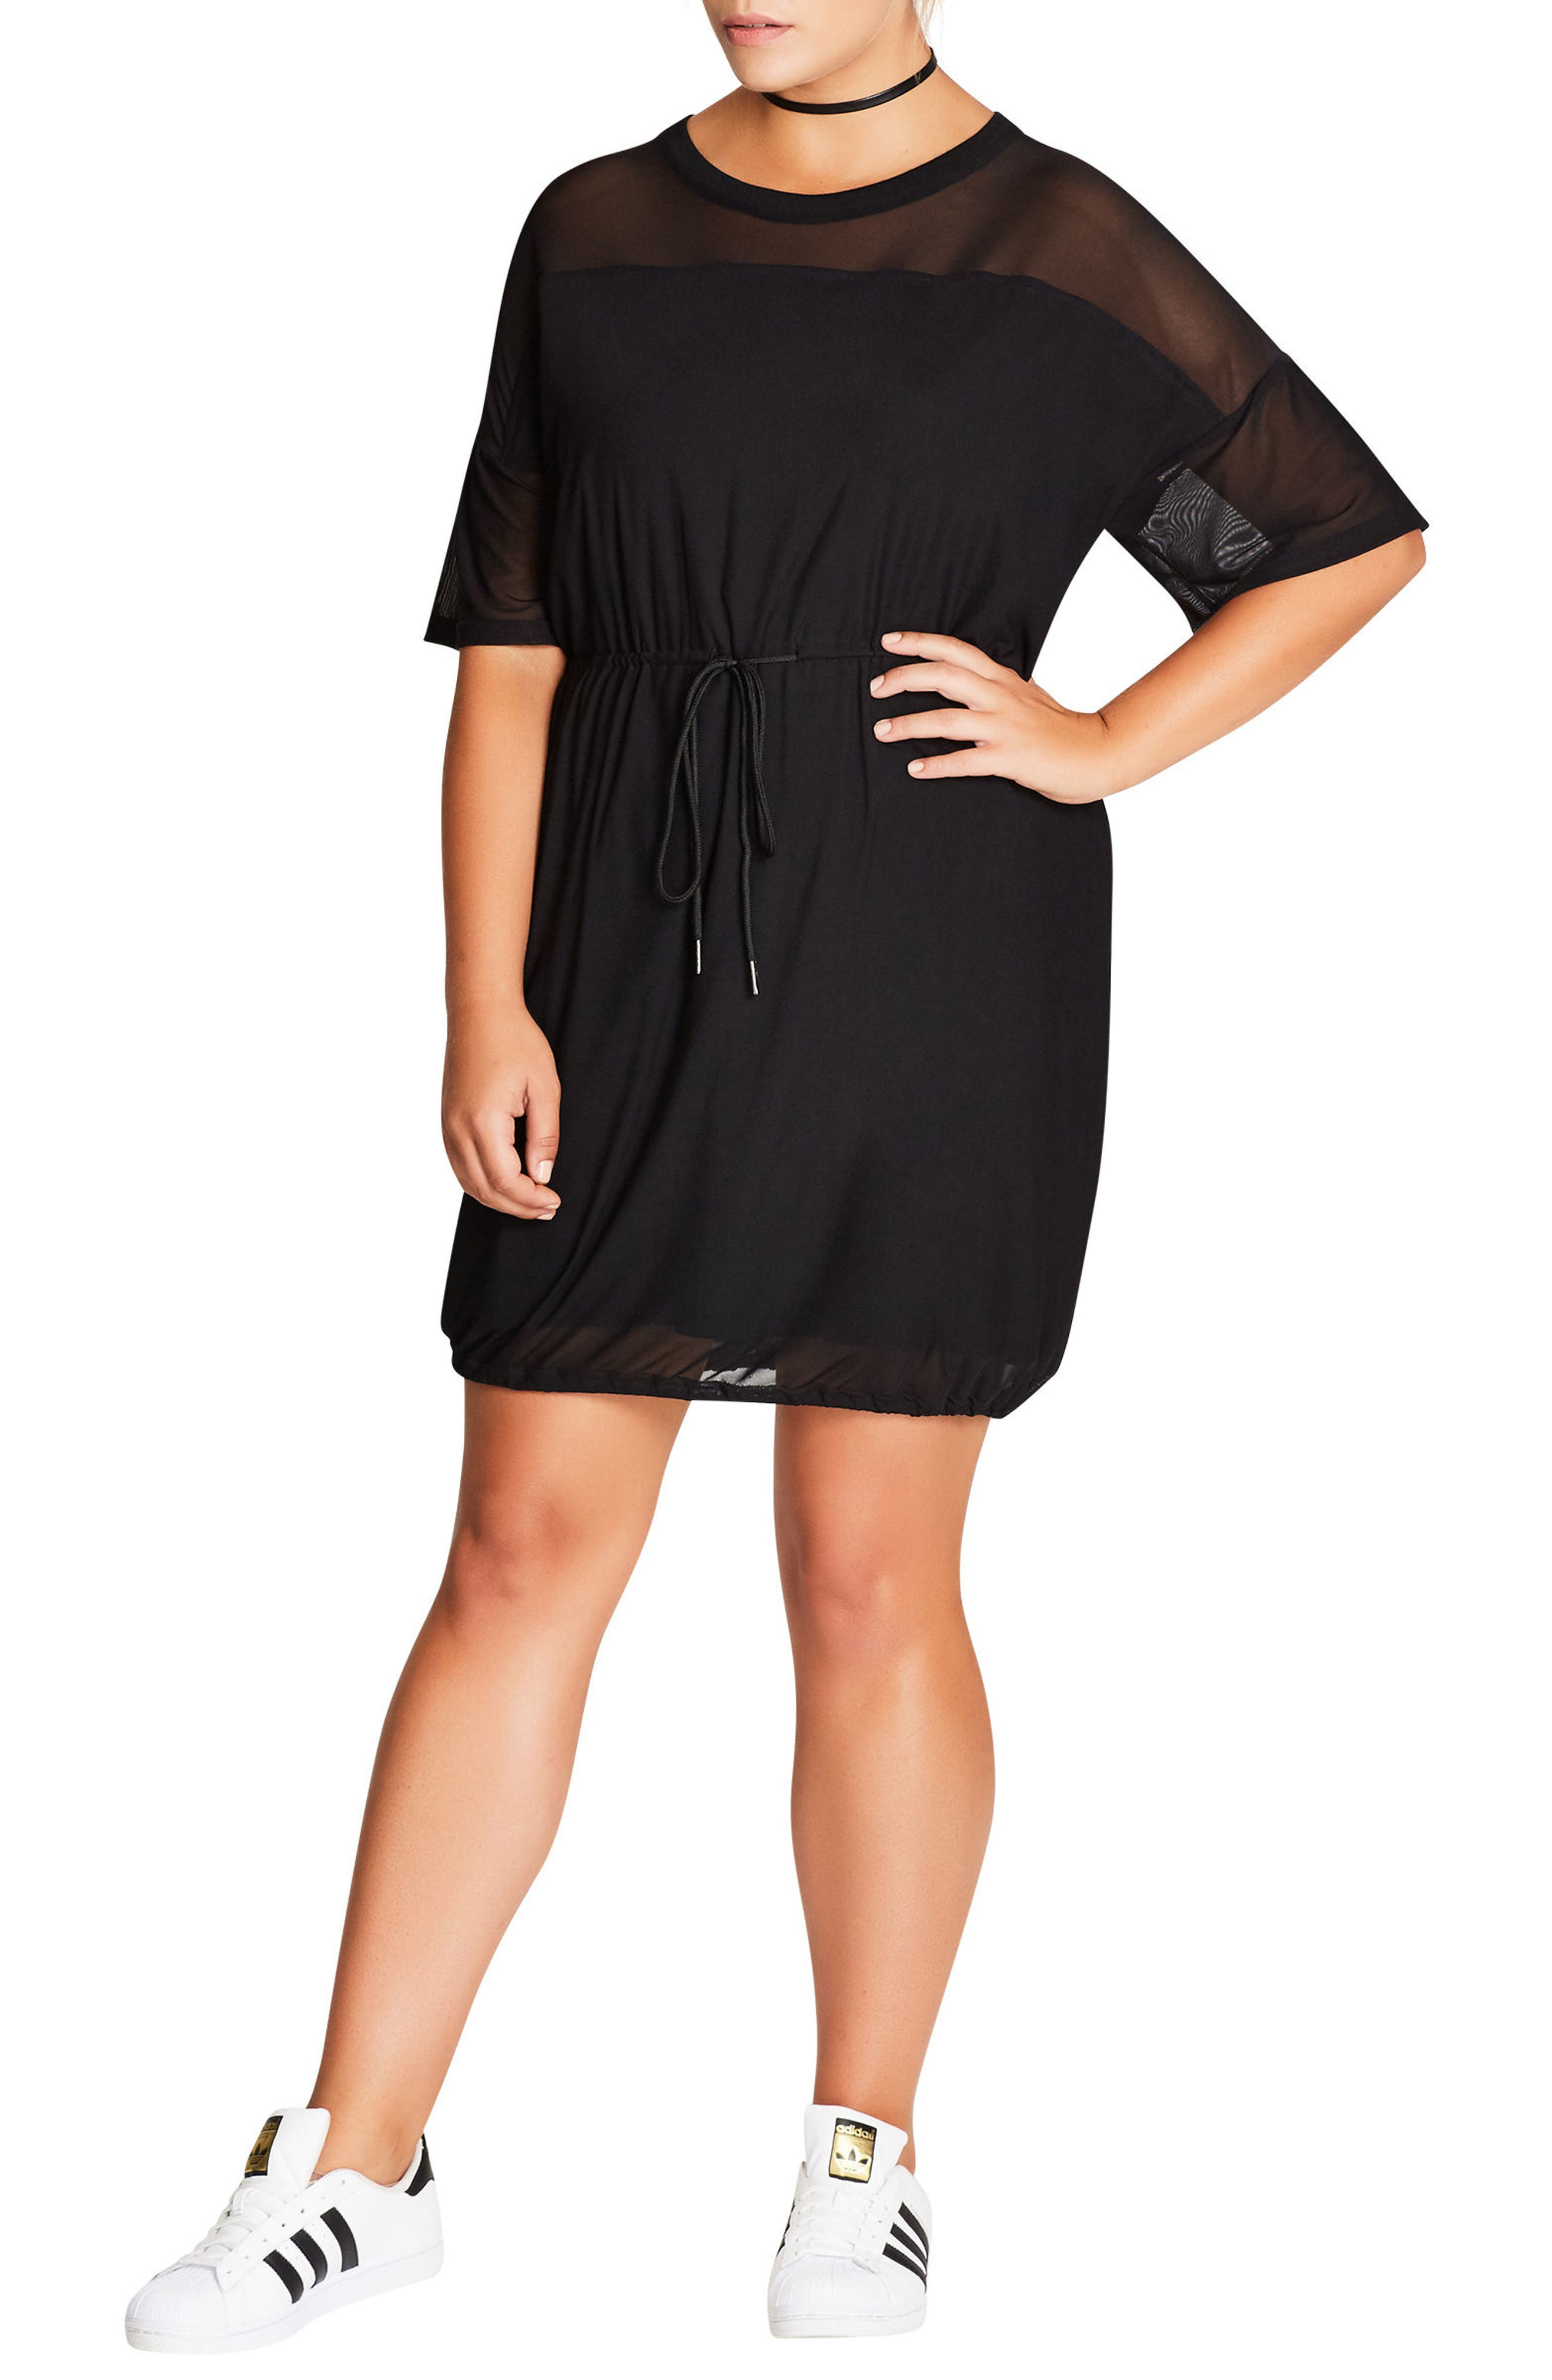 Sports One Tunic,                         Main,                         color, 001